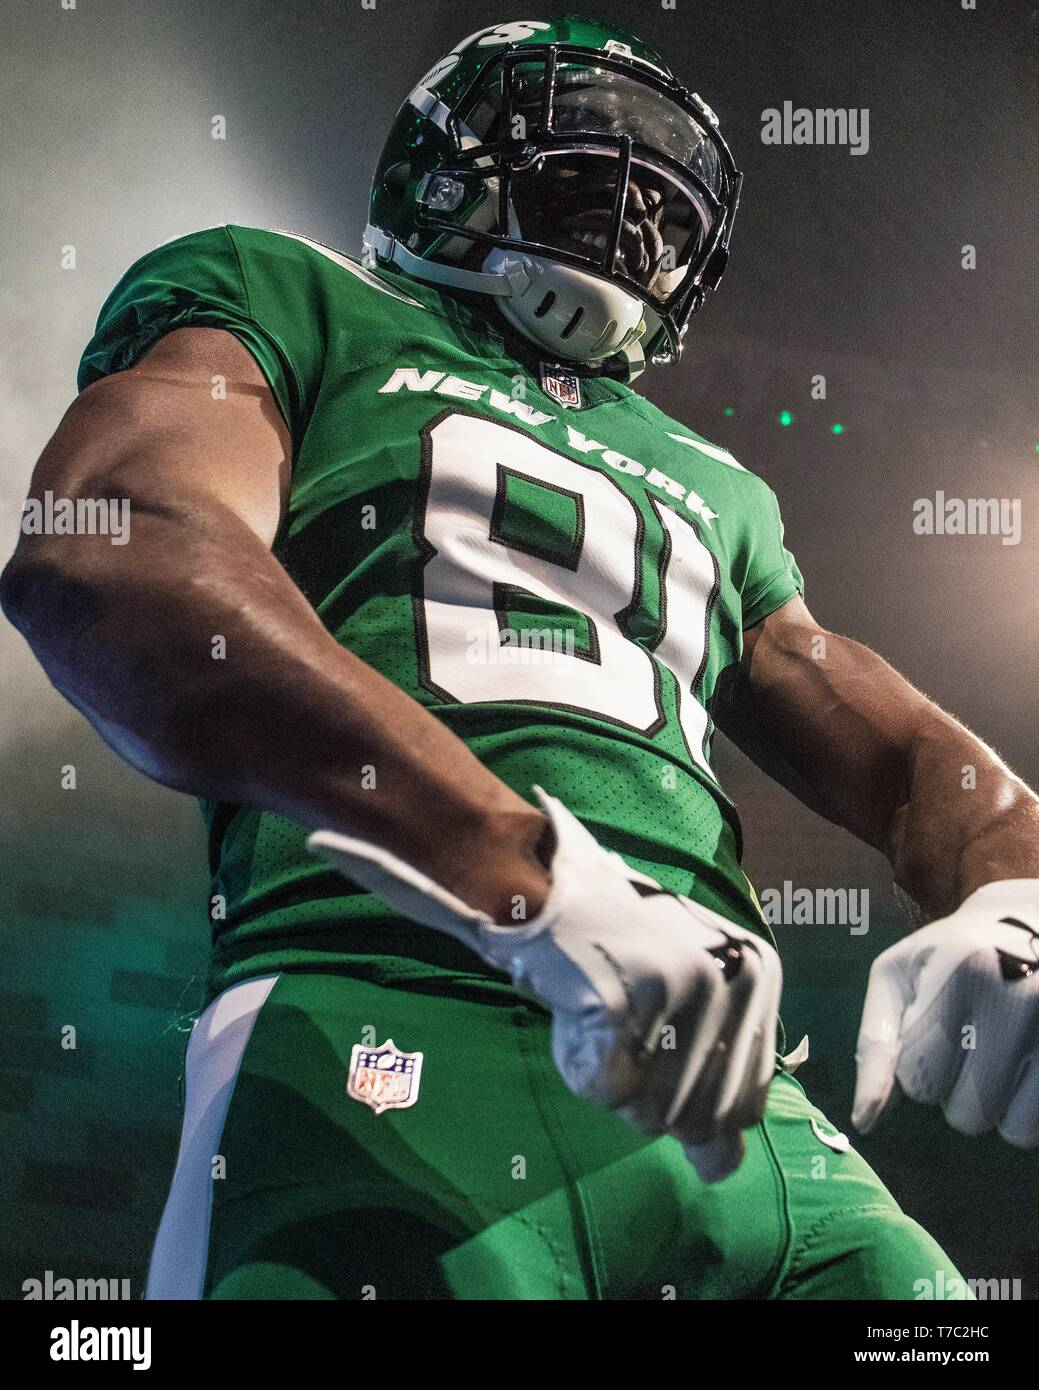 outlet store 08e45 509e0 New York Jets Jersey Reveal Green Carpet at Gotham Hall ...